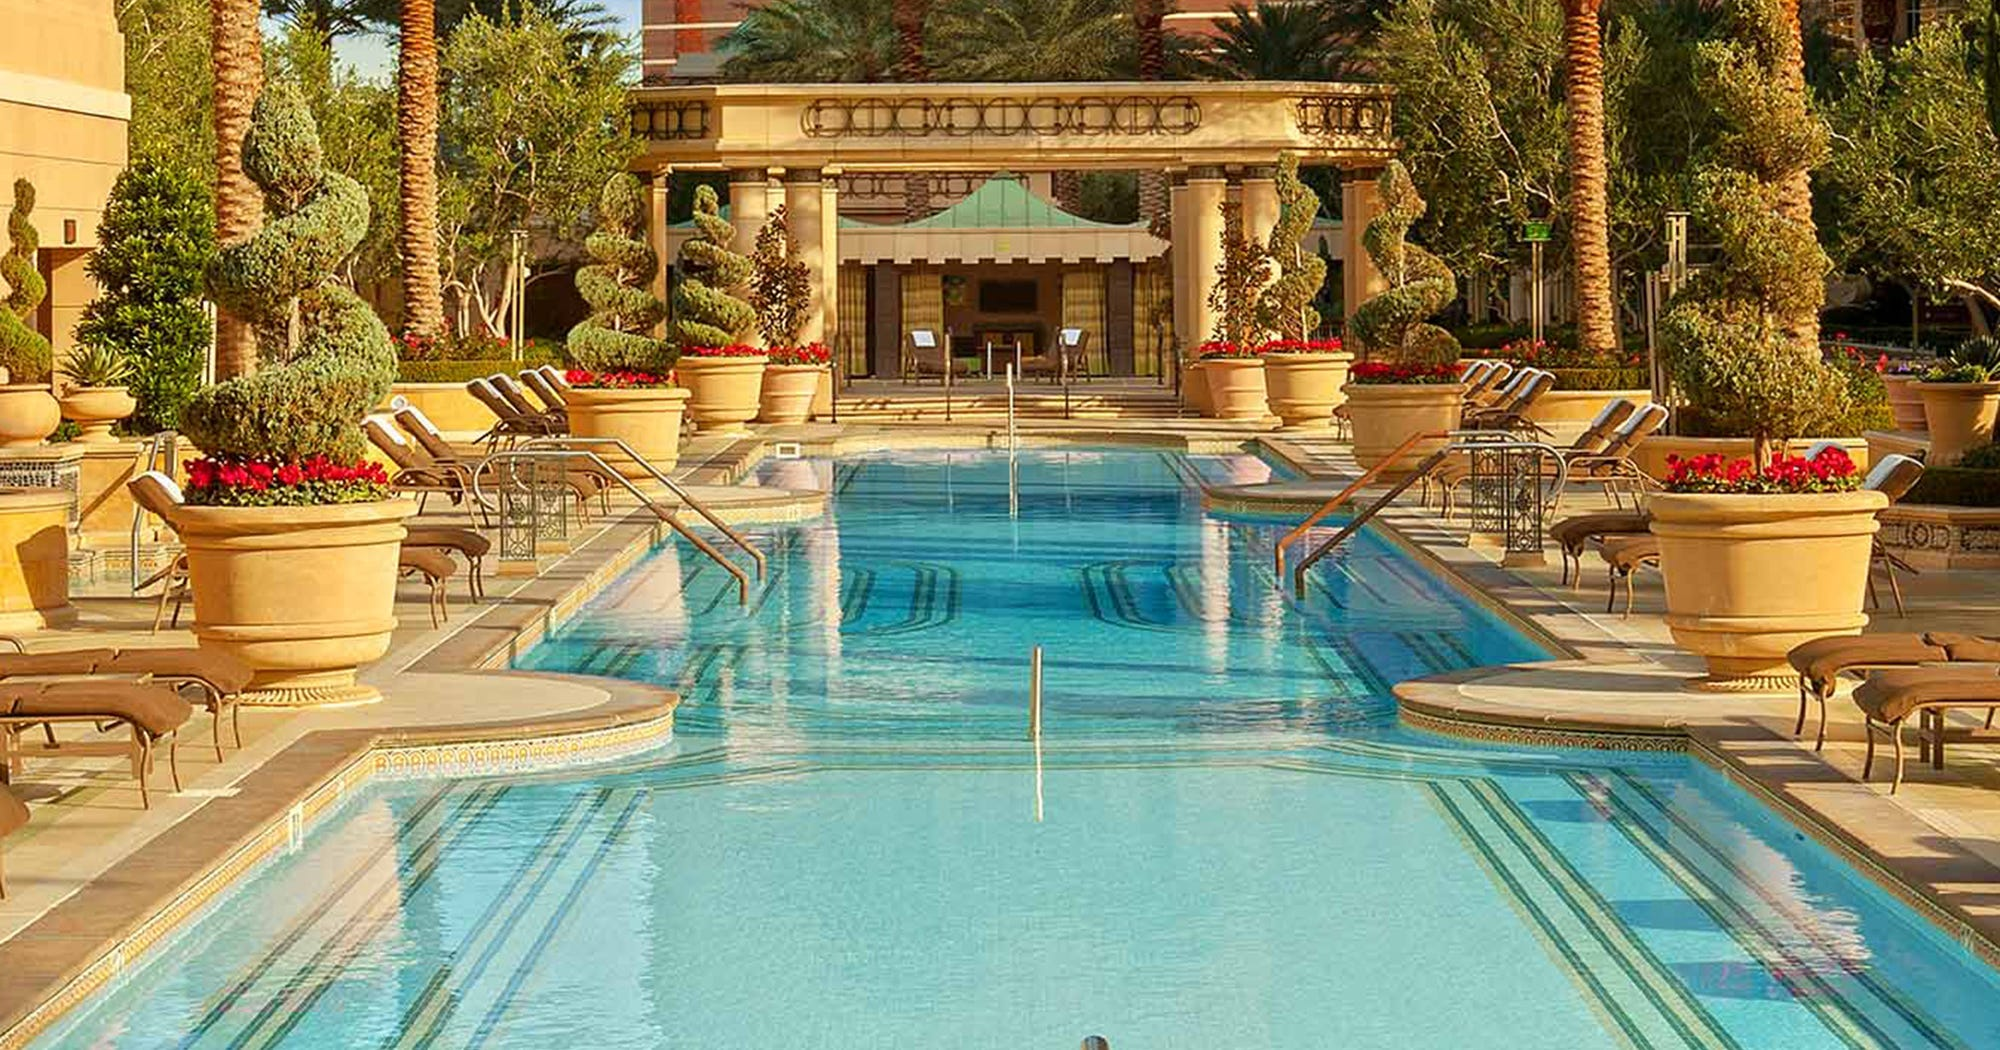 The 7 Most Gorgeous Pools Las Vegas Has To Offer